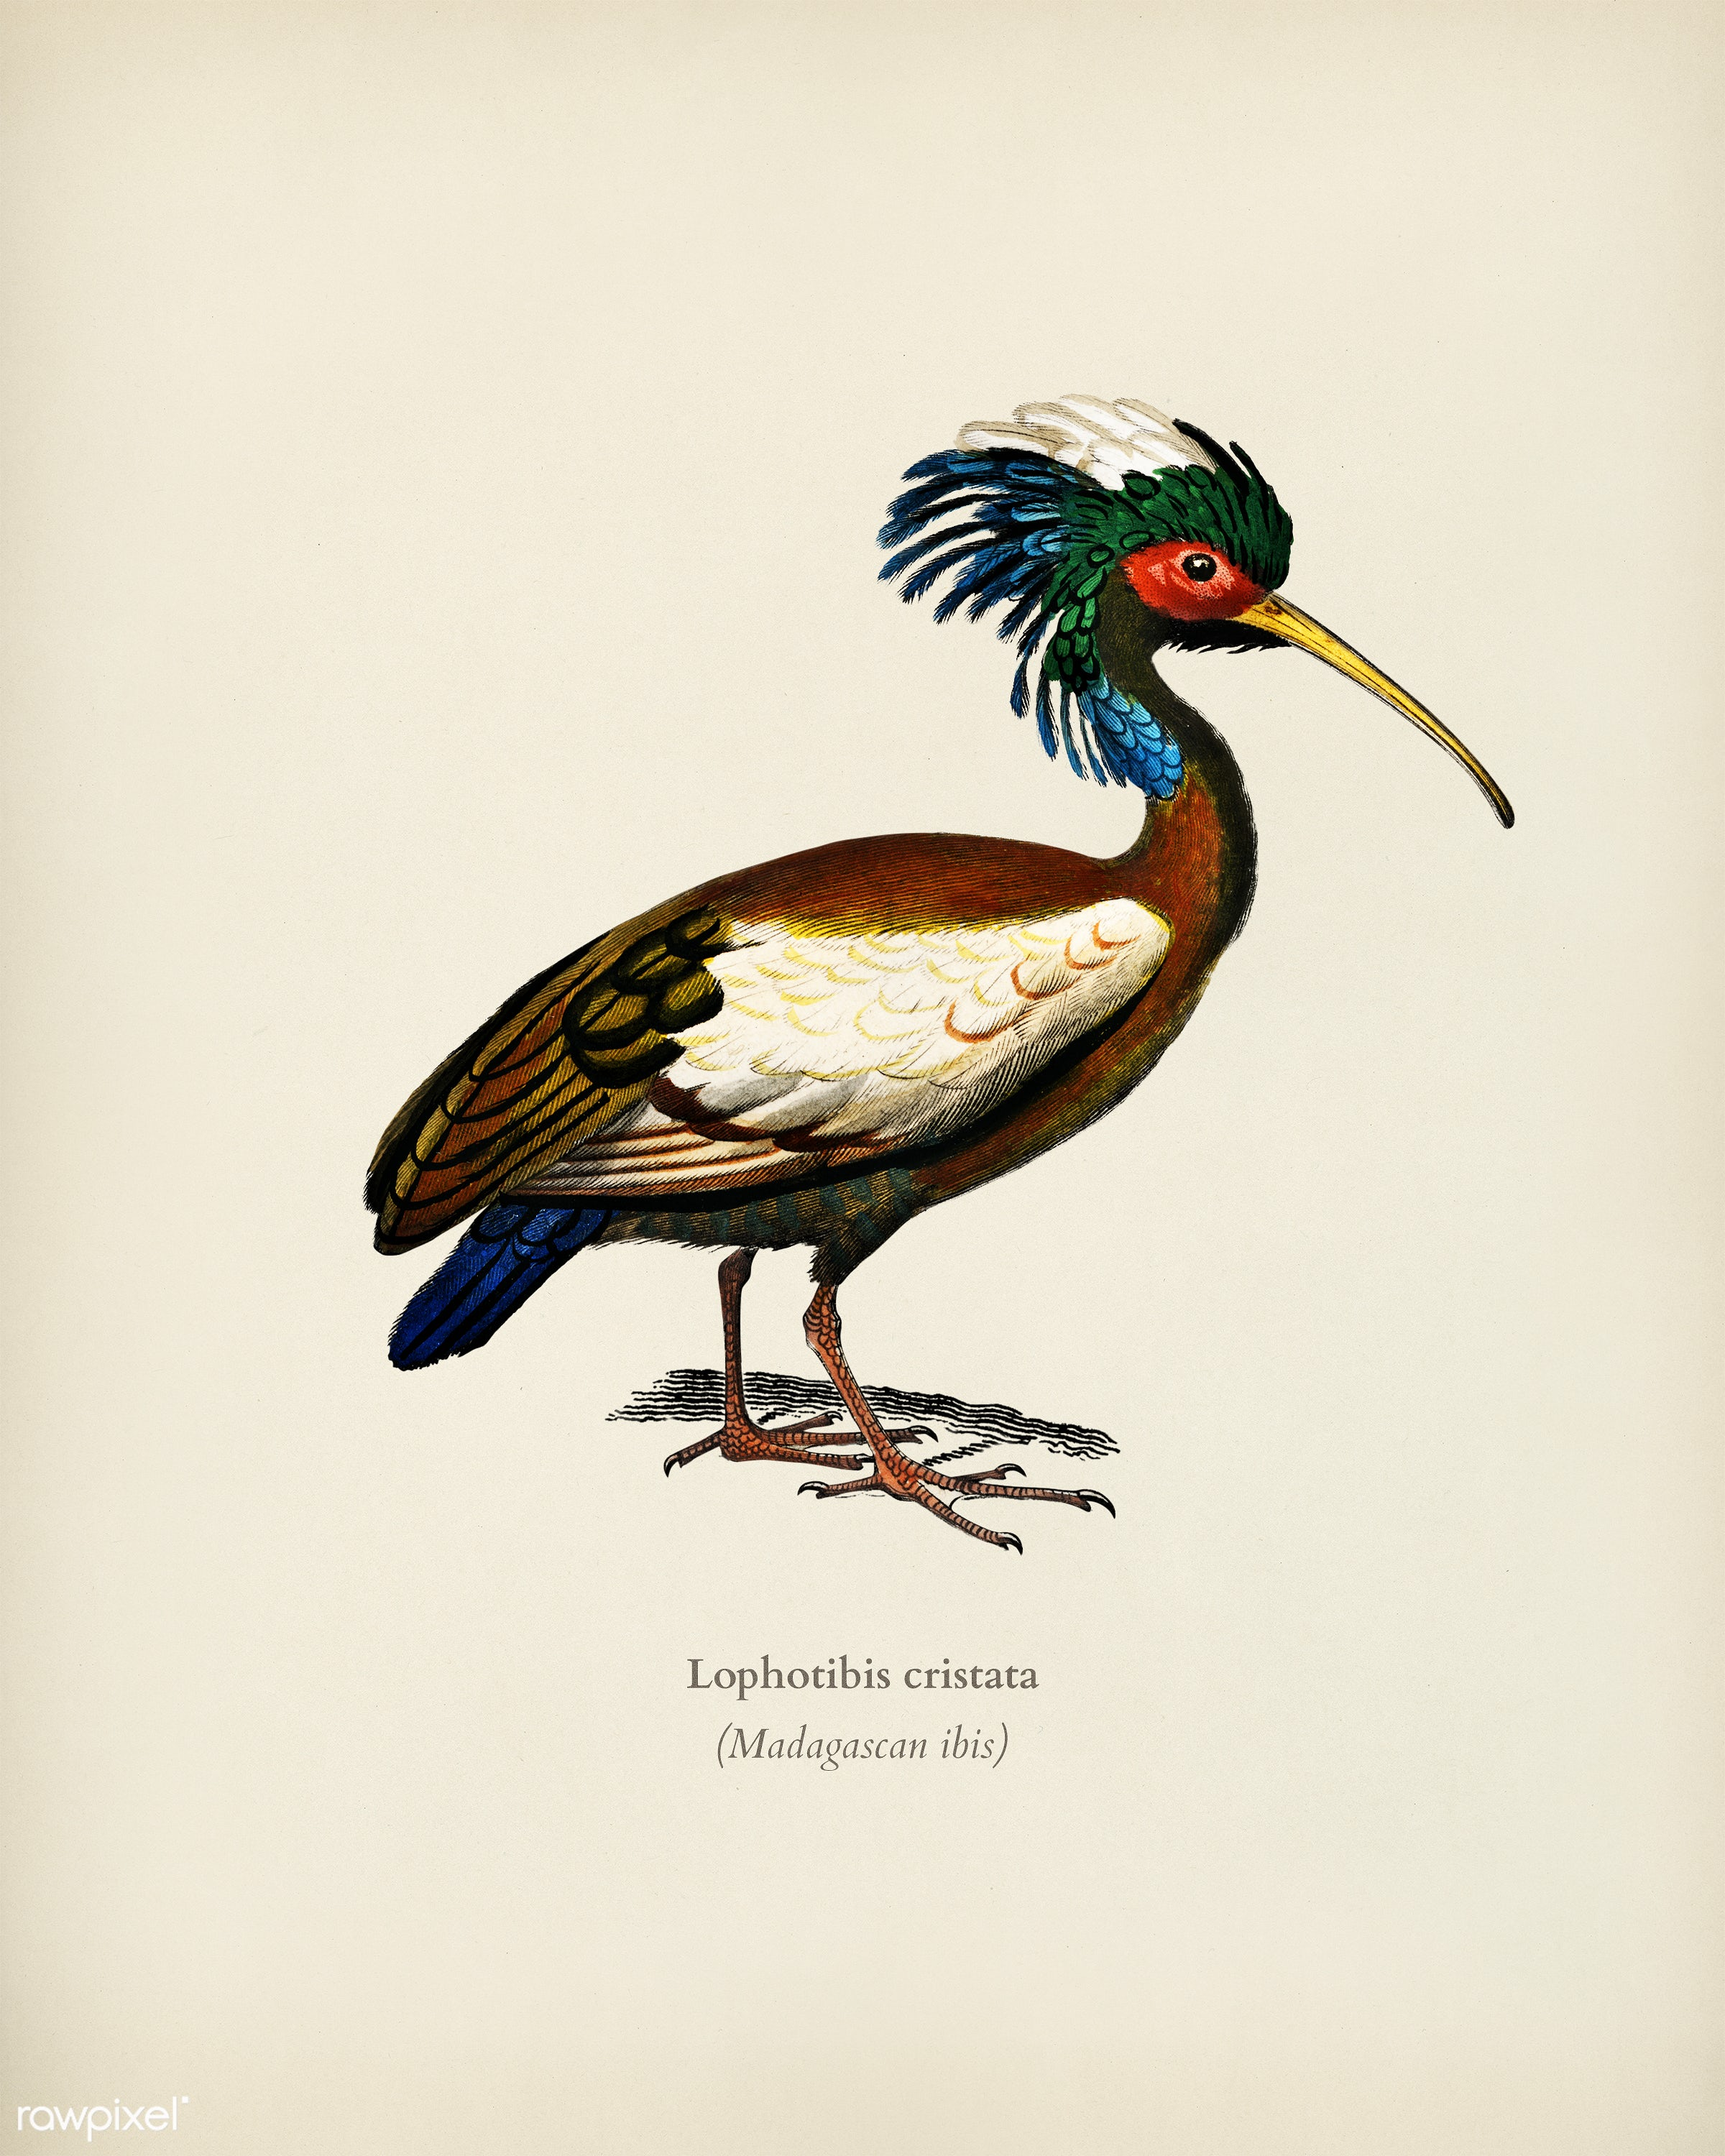 Madagascan ibis (Lophotibis cristata) illustrated by Charles Dessalines D' Orbigny (1806-1876). Digitally enhanced from...